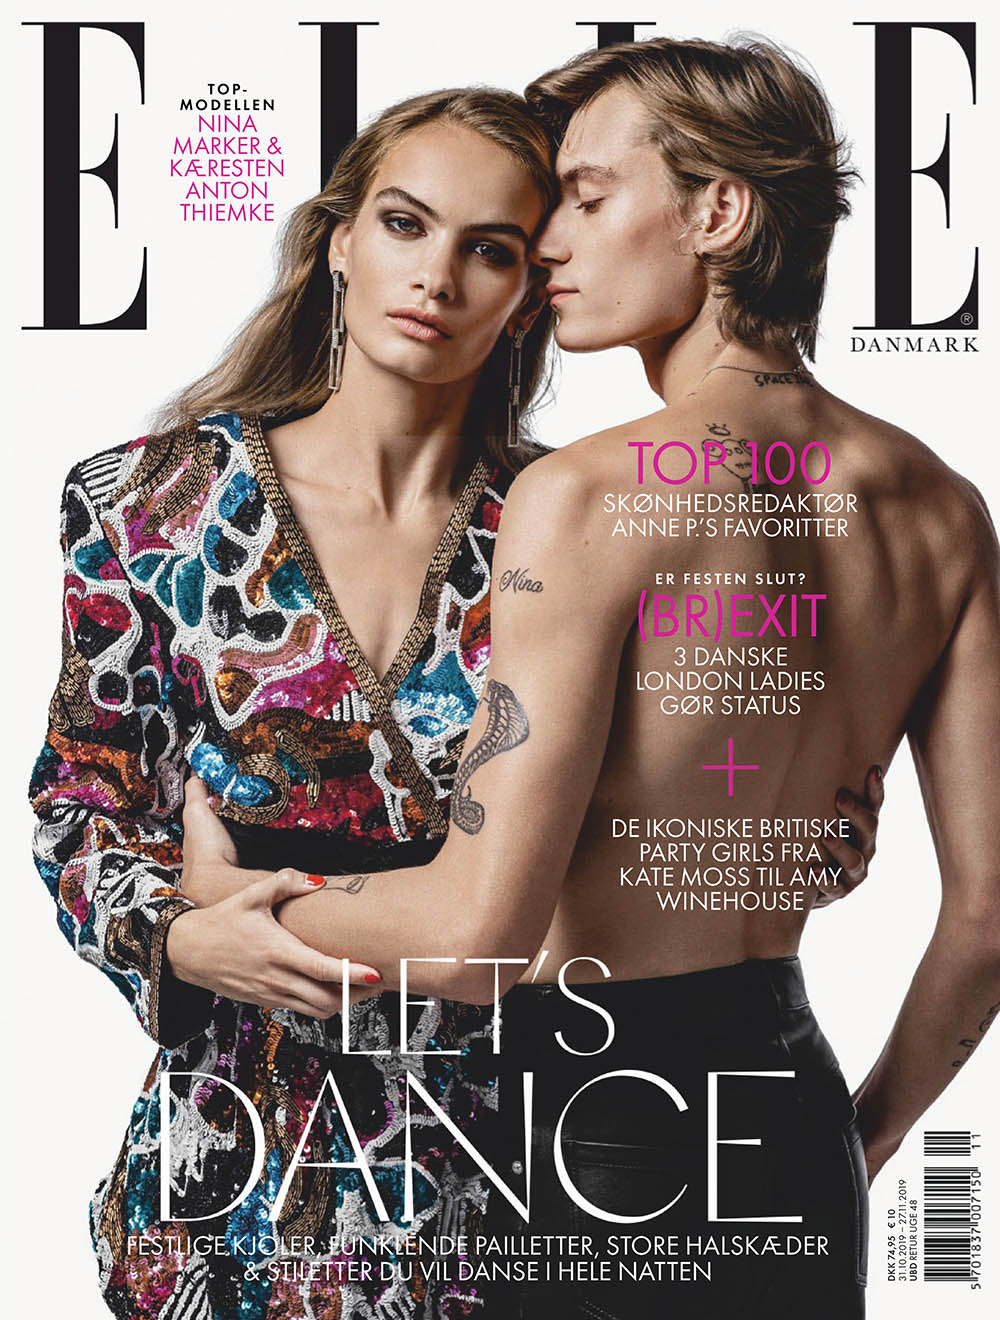 Nina Marker and Anton Thiemke cover Elle Denmark November 2019 by Marco van Rijt